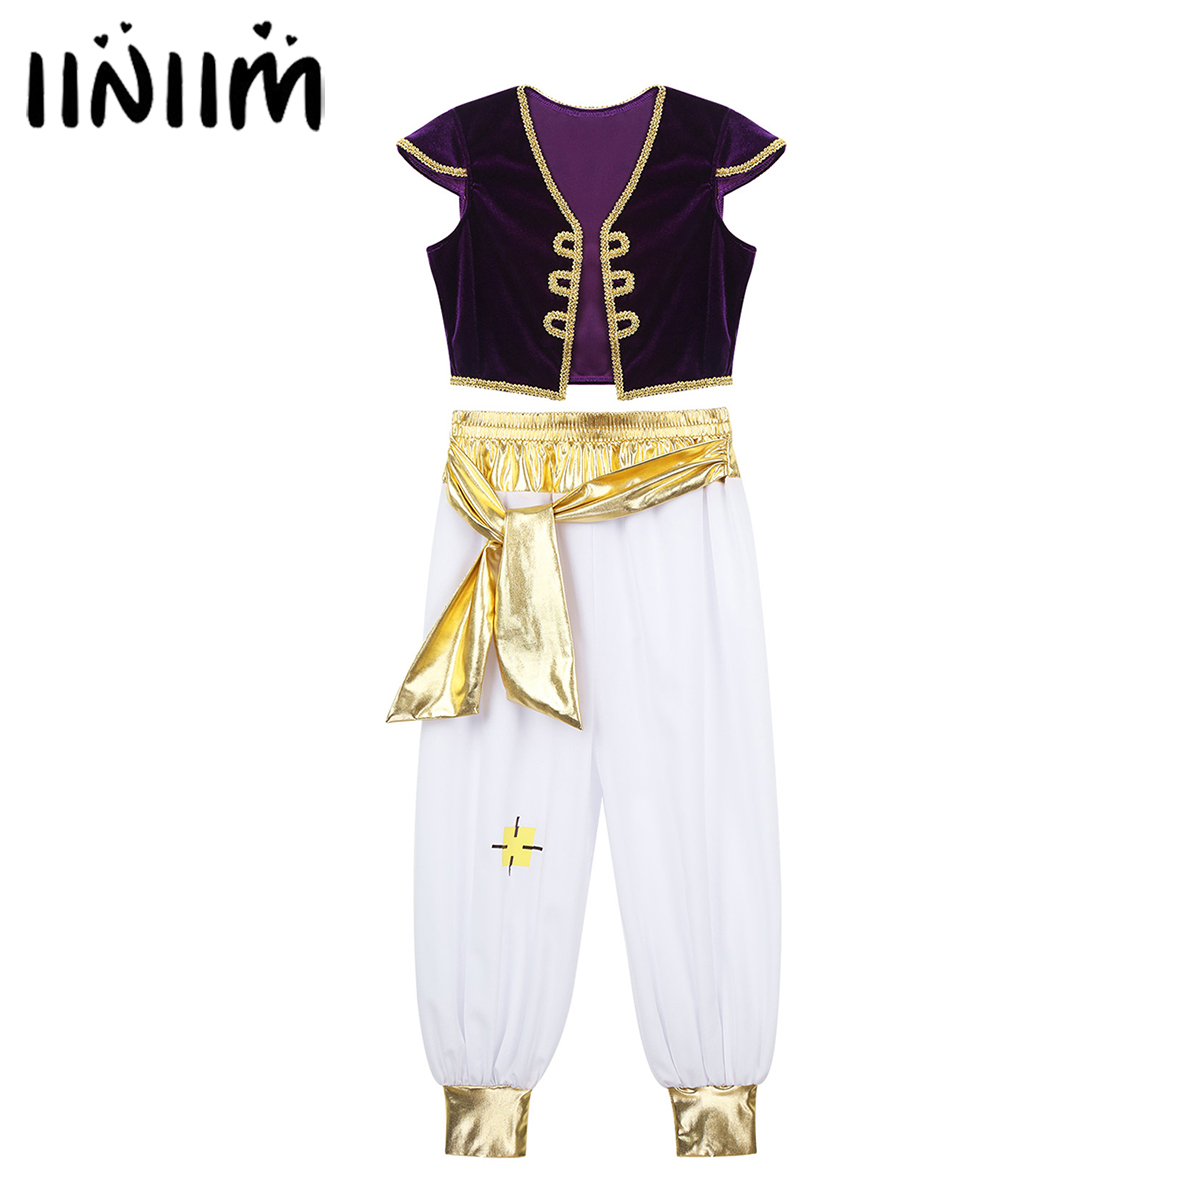 Kids Boys Children Arabian Prince Lamp Cosplay Costumes Cap Sleeves Vest Waistcoat With Pants Set For Halloween Parties Dress Up